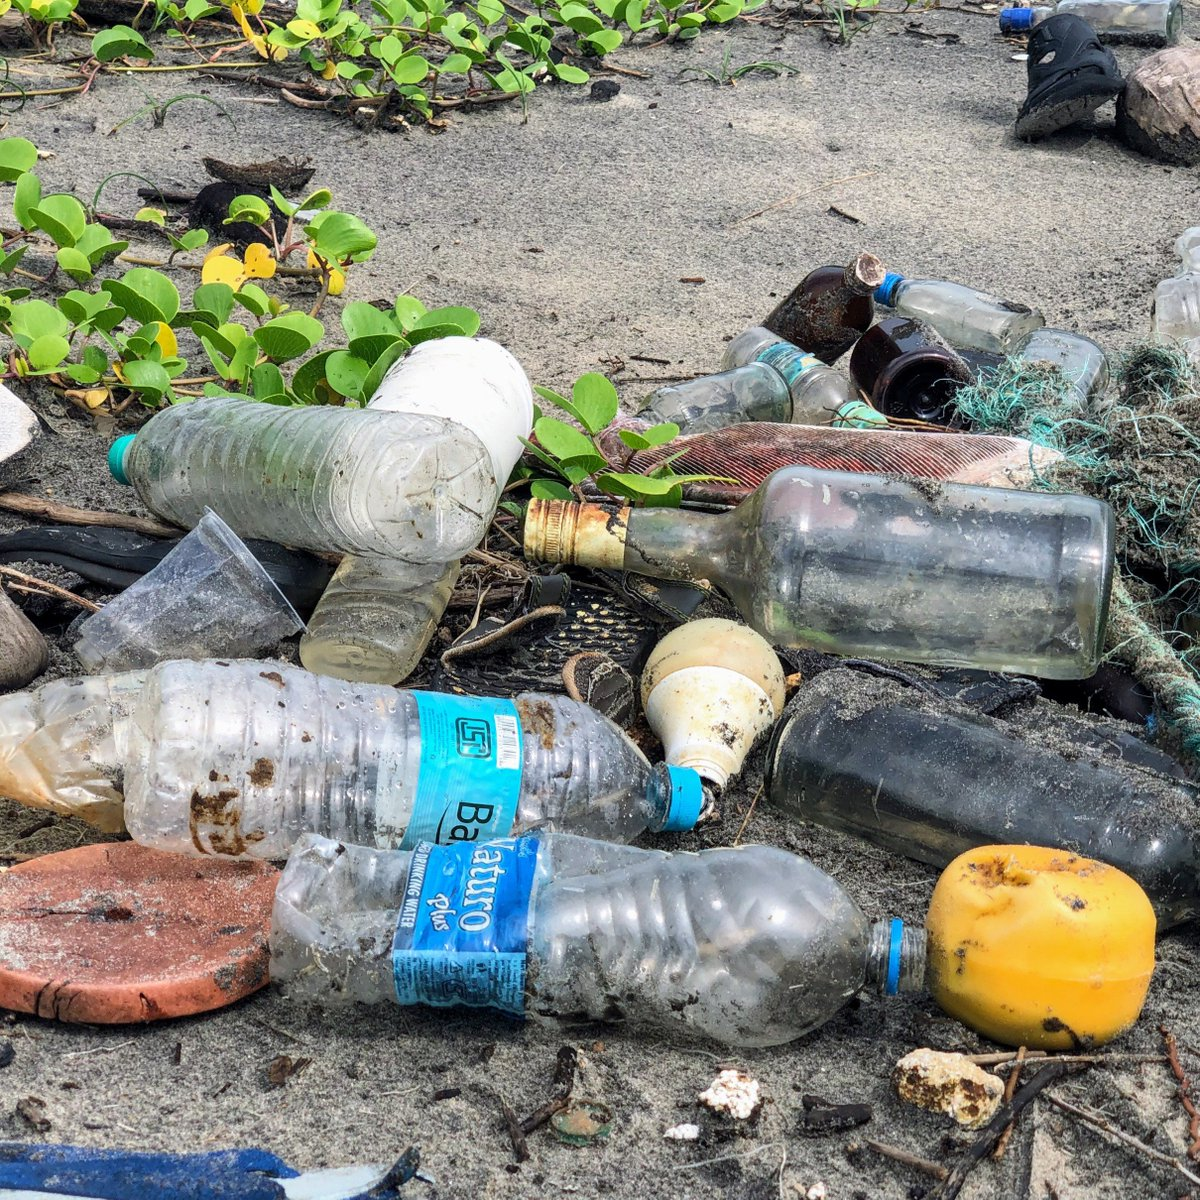 This is heavy! Plastics in the ocean will outweigh fish by 2050 #marinedebris #ocean #savetheocean #RecyclingMatters #MondayMotivation #Recycle